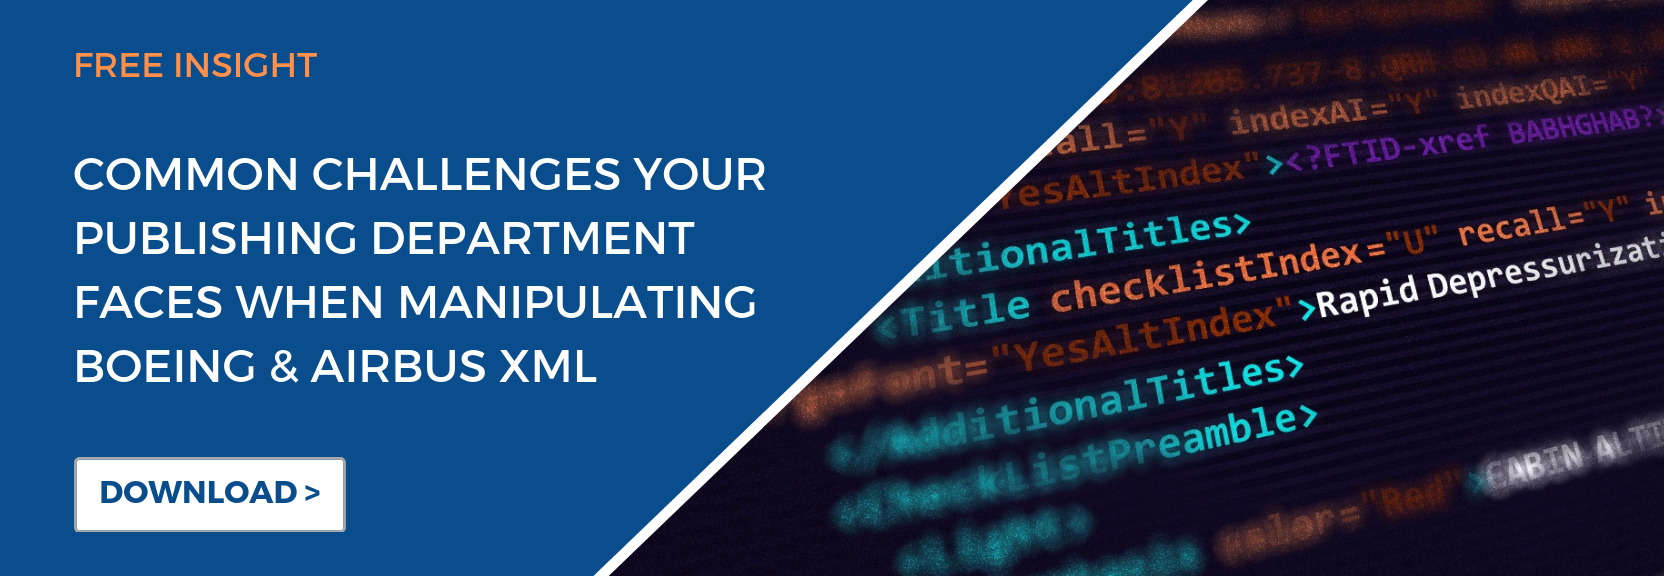 Learn the common challenges your publishing department faces when manipulating Airbus and Boeing XML